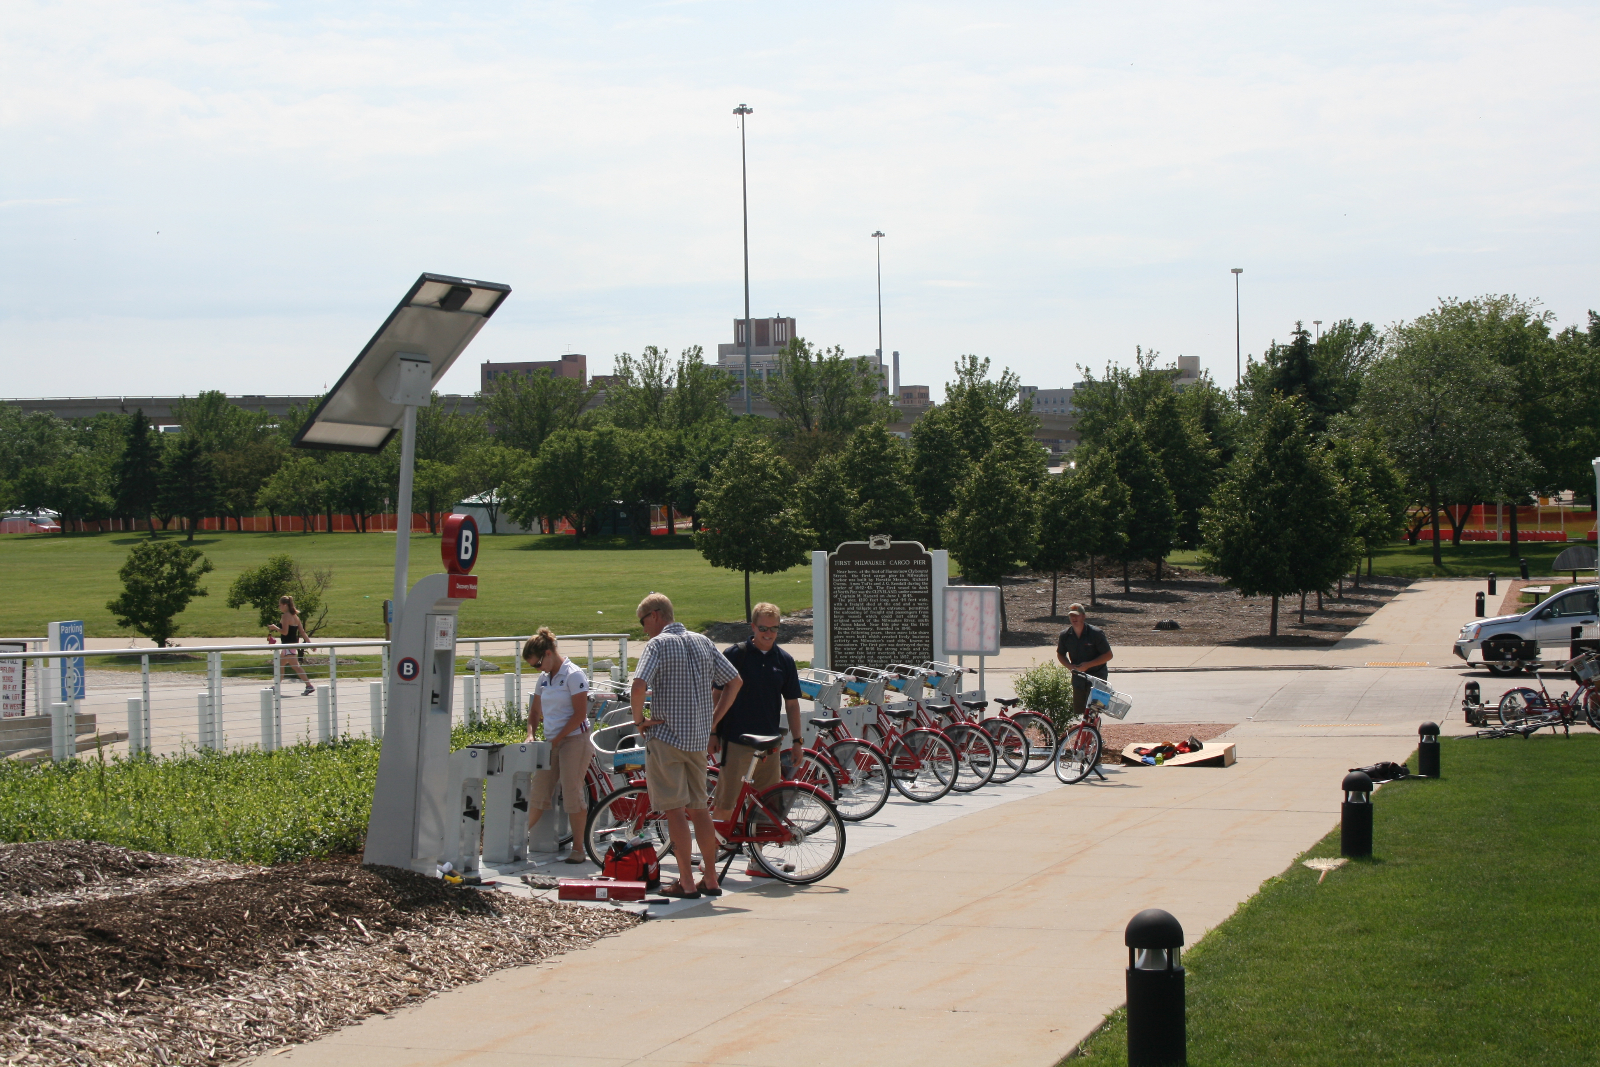 Bike-sharing station at Discovery World.